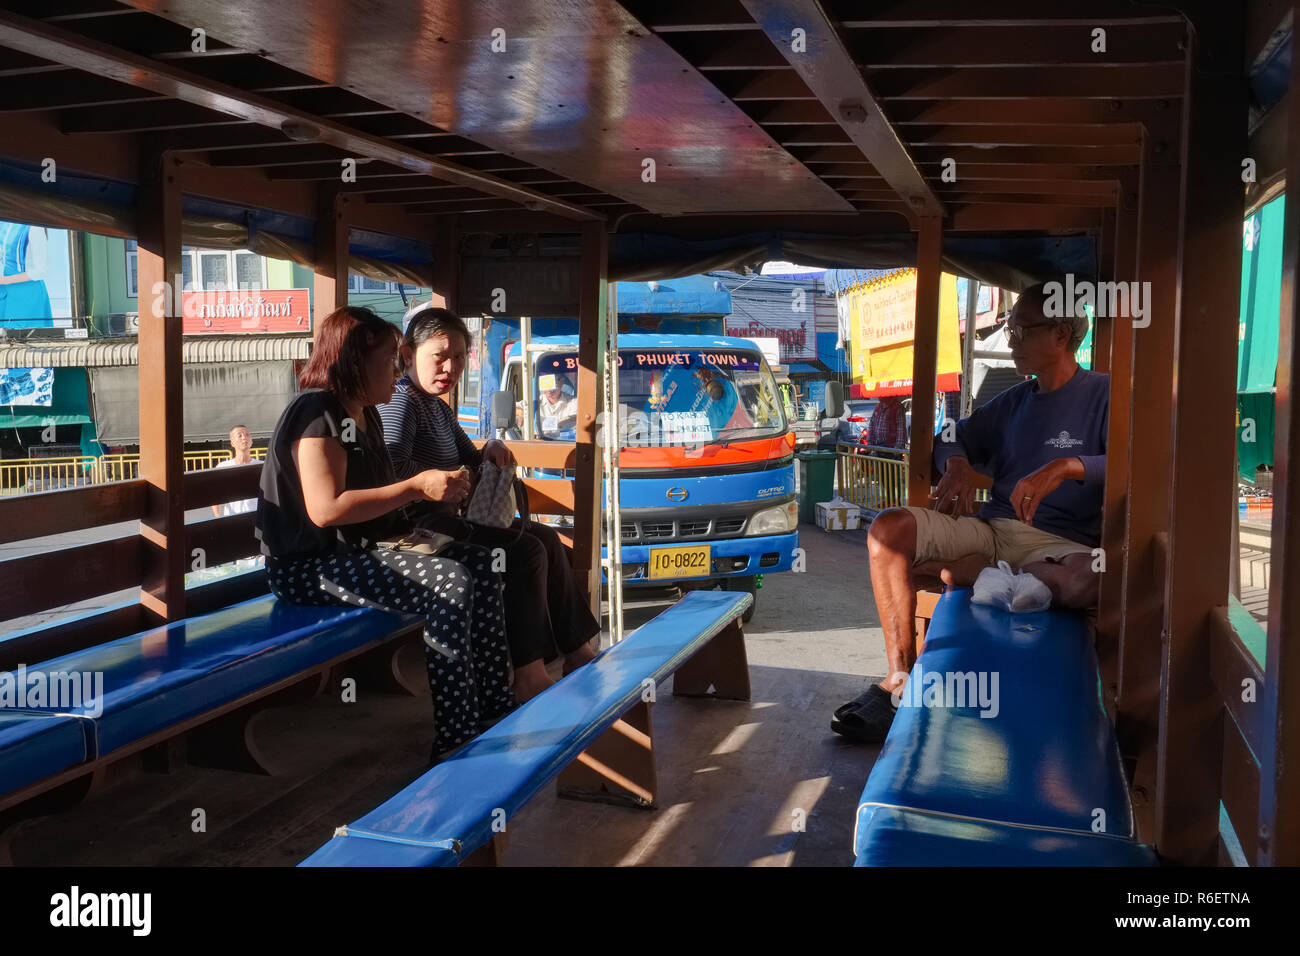 The inside of a songthaew, a typical local bus in Phuket, leaving the market in Phuket Town, Thailand - Stock Image